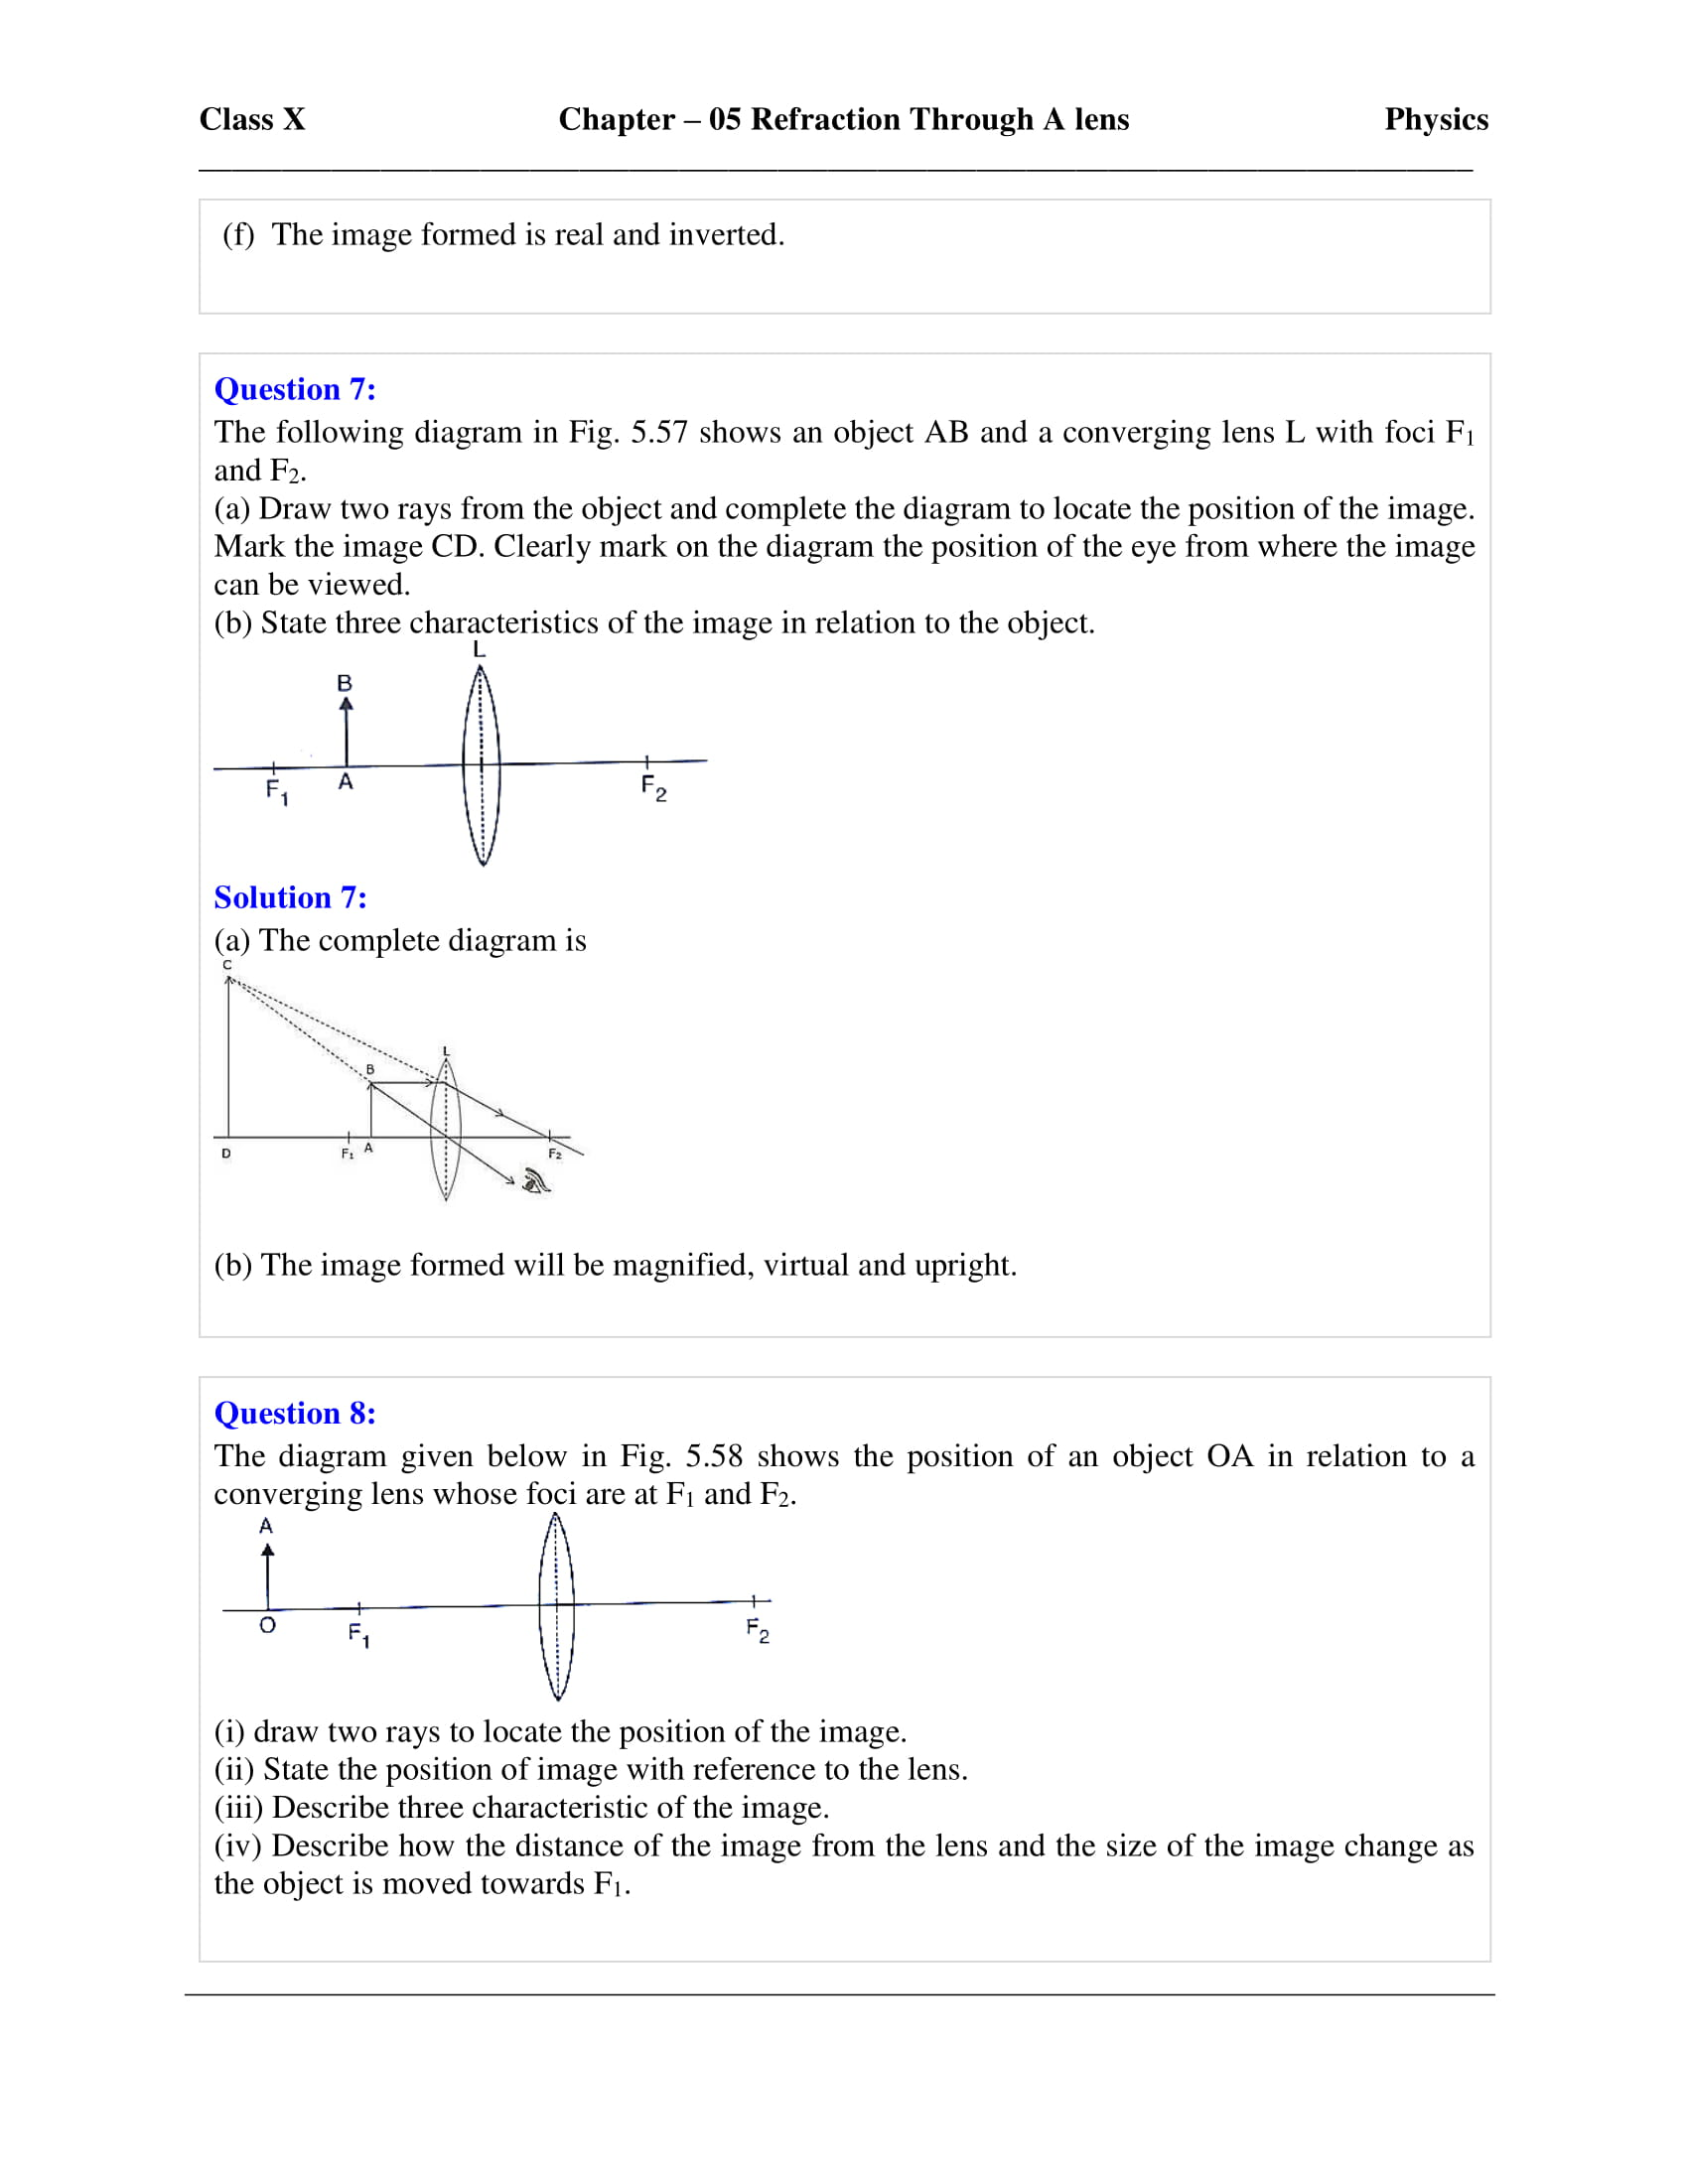 icse-selina-physics-solutions-class-10-chapter-5-refraction-through-a-lens-19